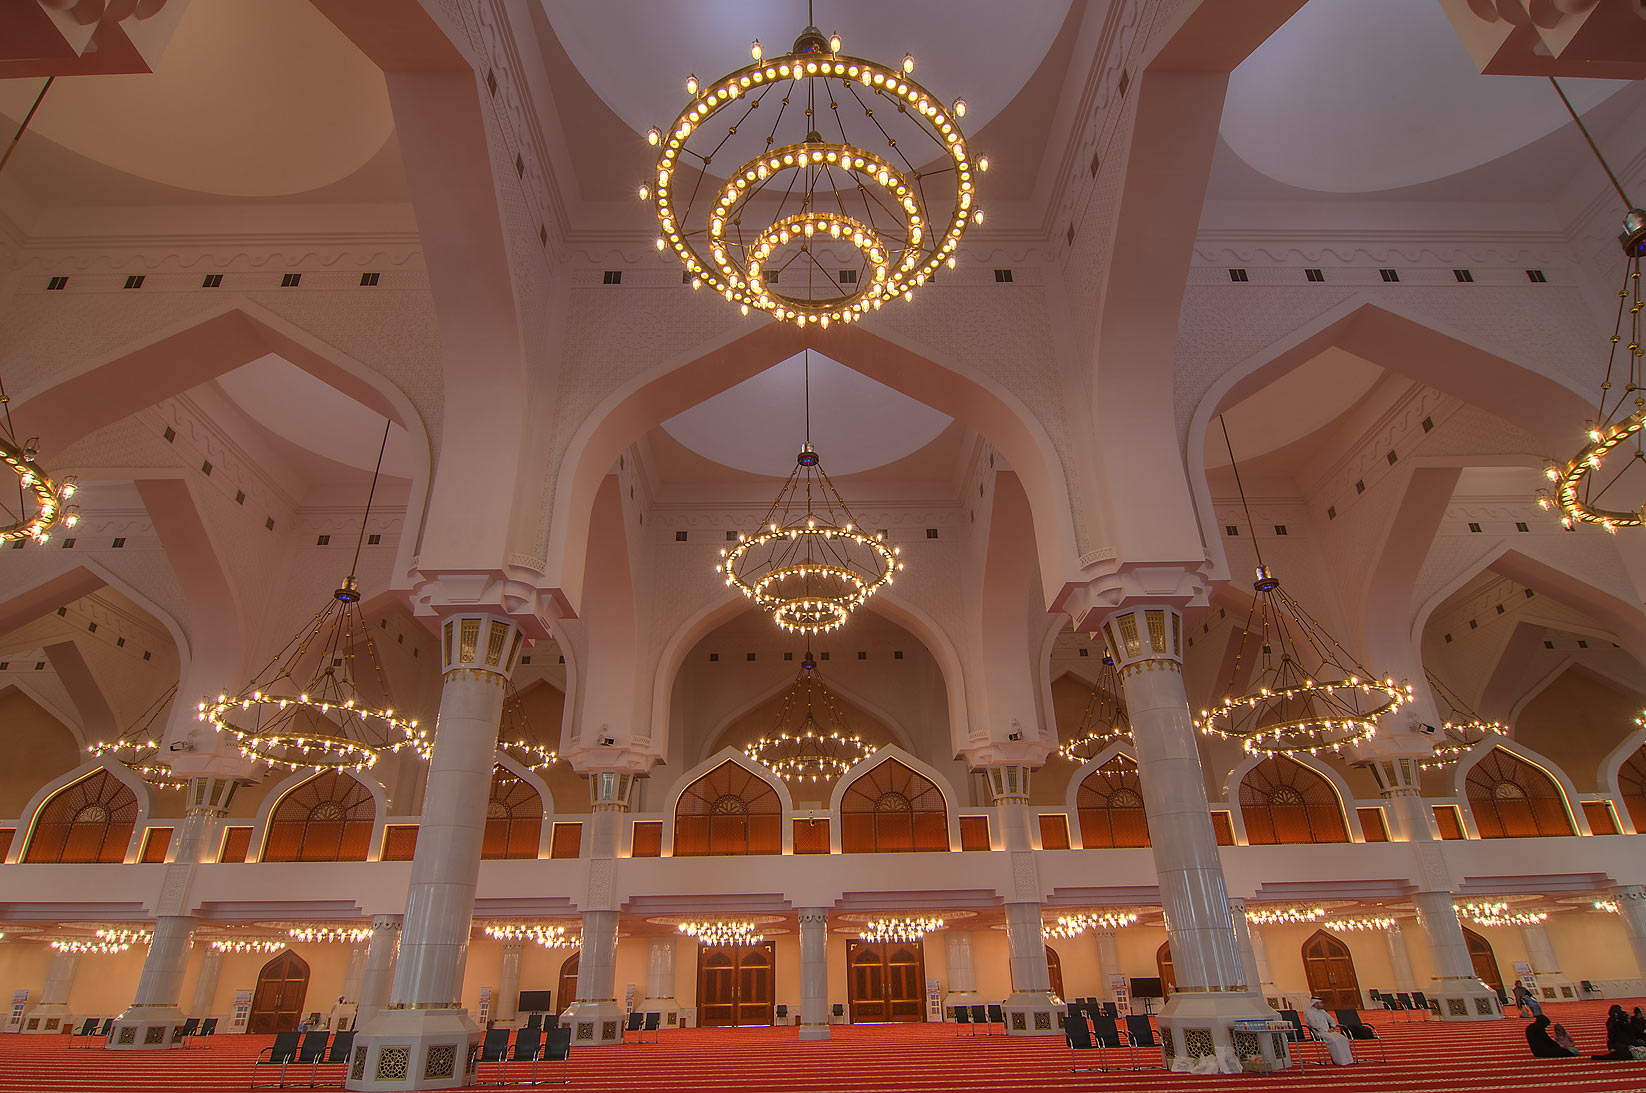 Interior of State Mosque (Sheikh Muhammad Ibn Abdul Wahhab Mosque). Doha, Qatar